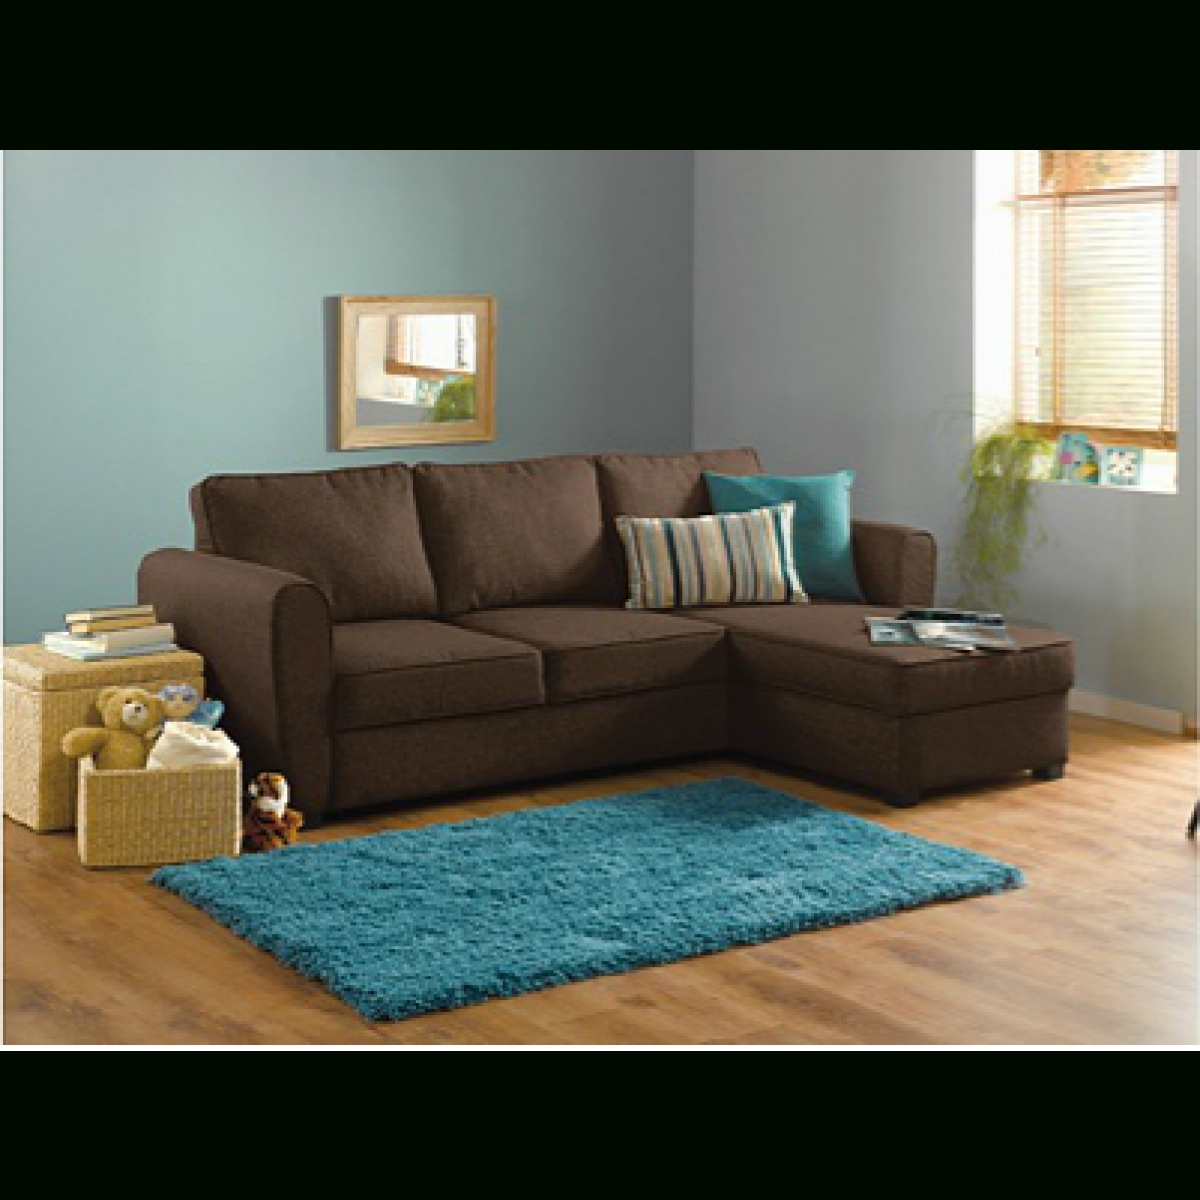 Home New Siena Fabric Corner Sofa Bed W/ Storage – Chocolate Regarding Corner Sofa Beds (View 9 of 15)